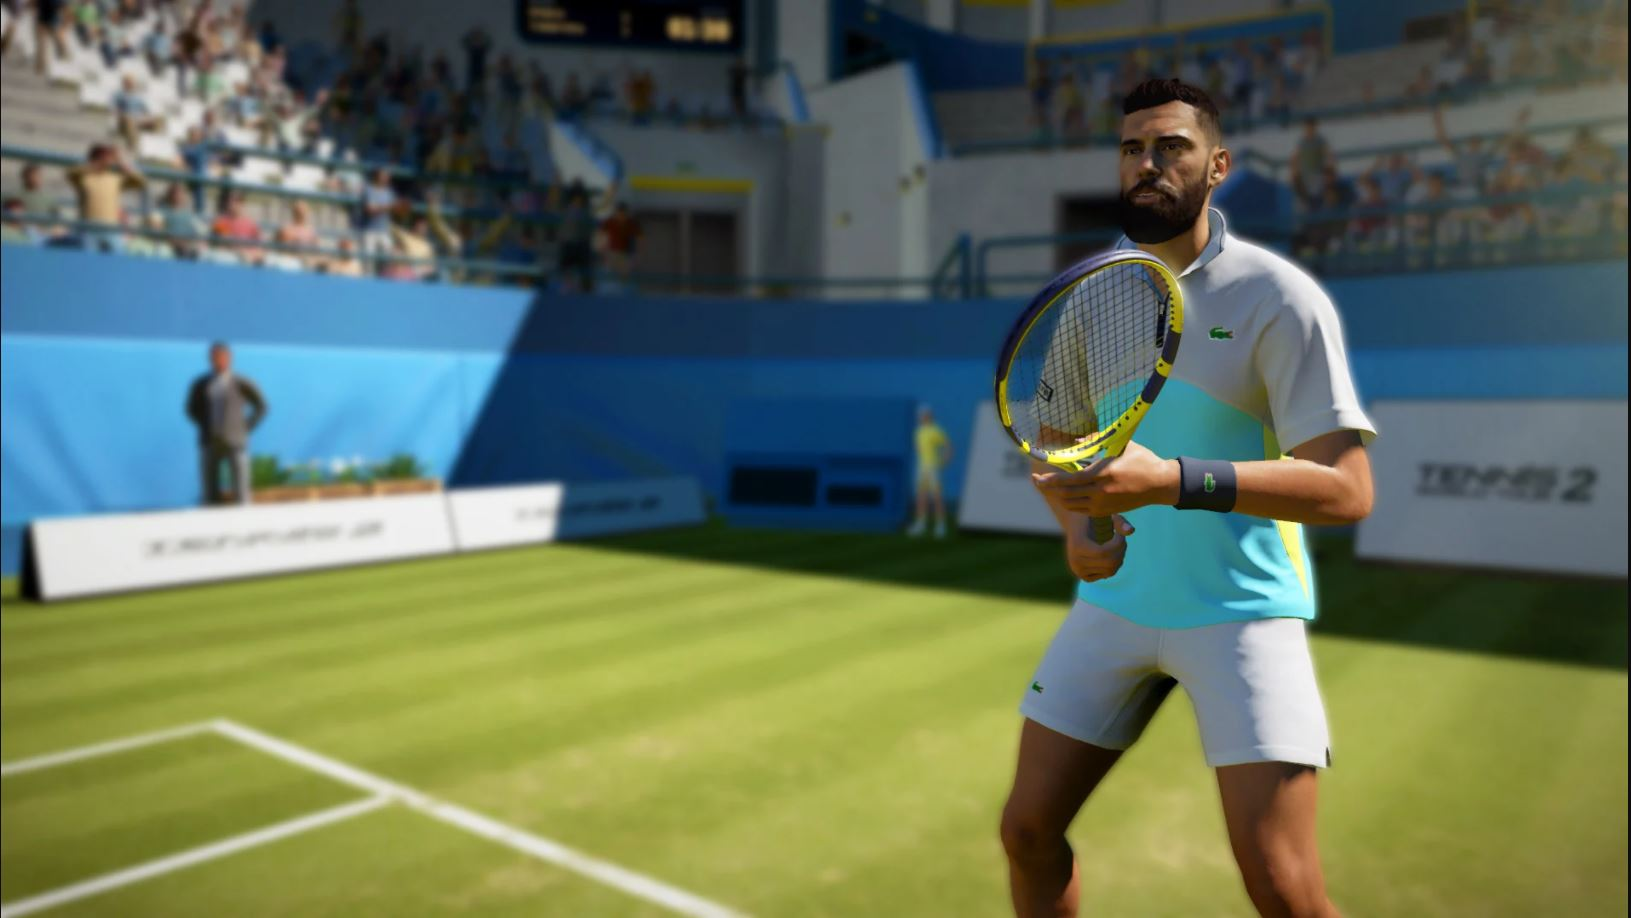 Tennis player Benoit Paire in game